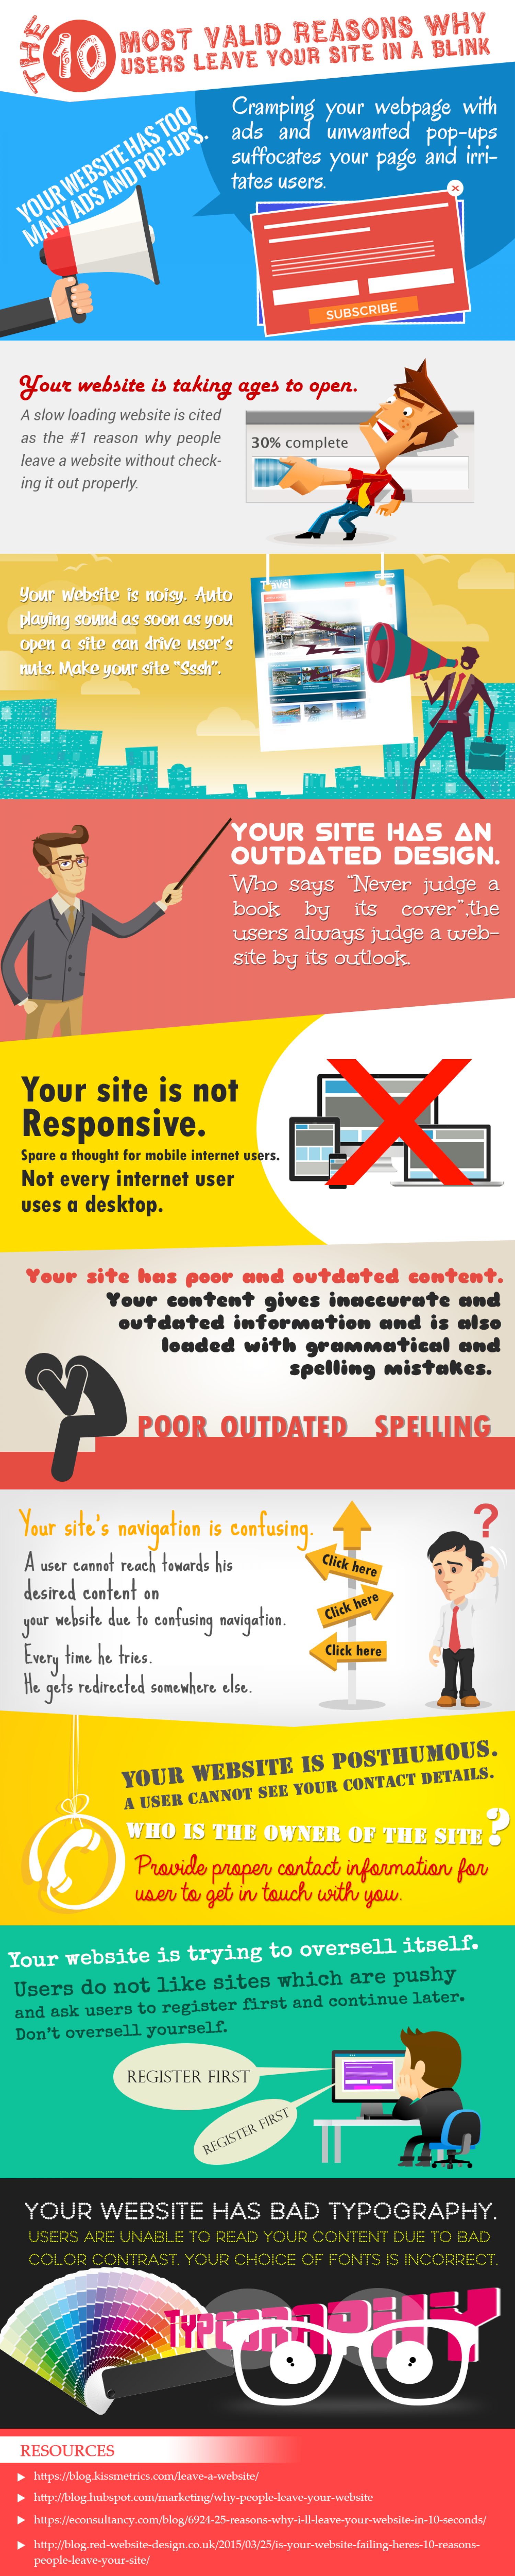 10 Valid Reasons Why People Don't Like to Stick Around on Your Website Infographic